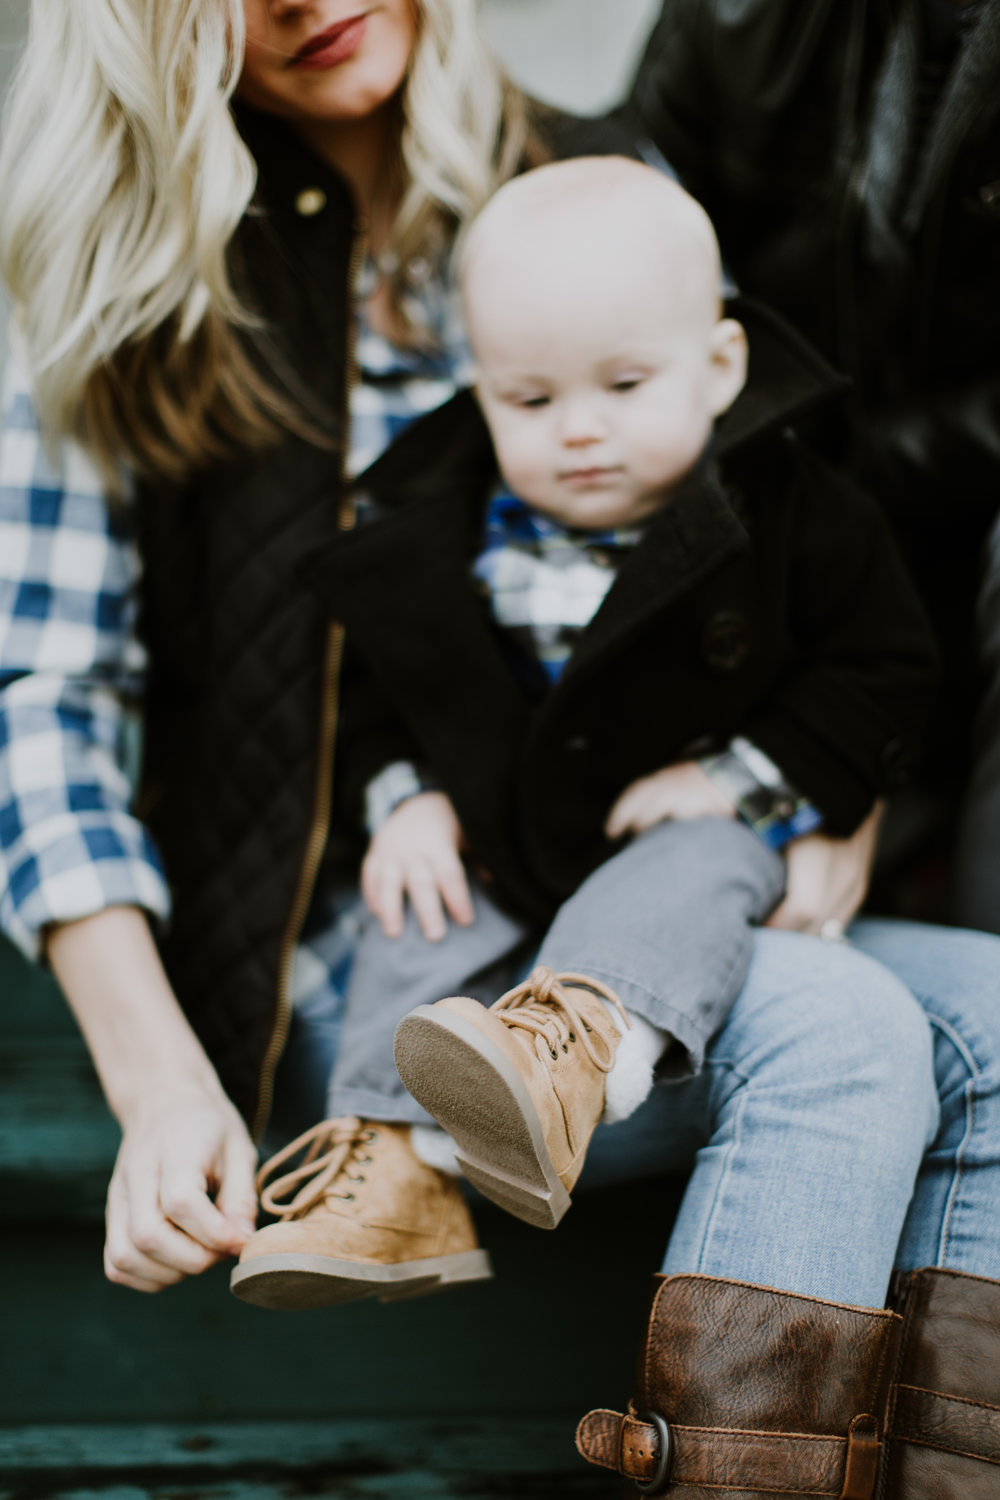 The best part of Merit's outfit? His tiny boots. Perfect for winter. And the most stylish accessory for a one year old boy. Find these shoes at: http://oldnavy.gap.com/browse/product.do?cid=1073322&vid=1&pid=425187002